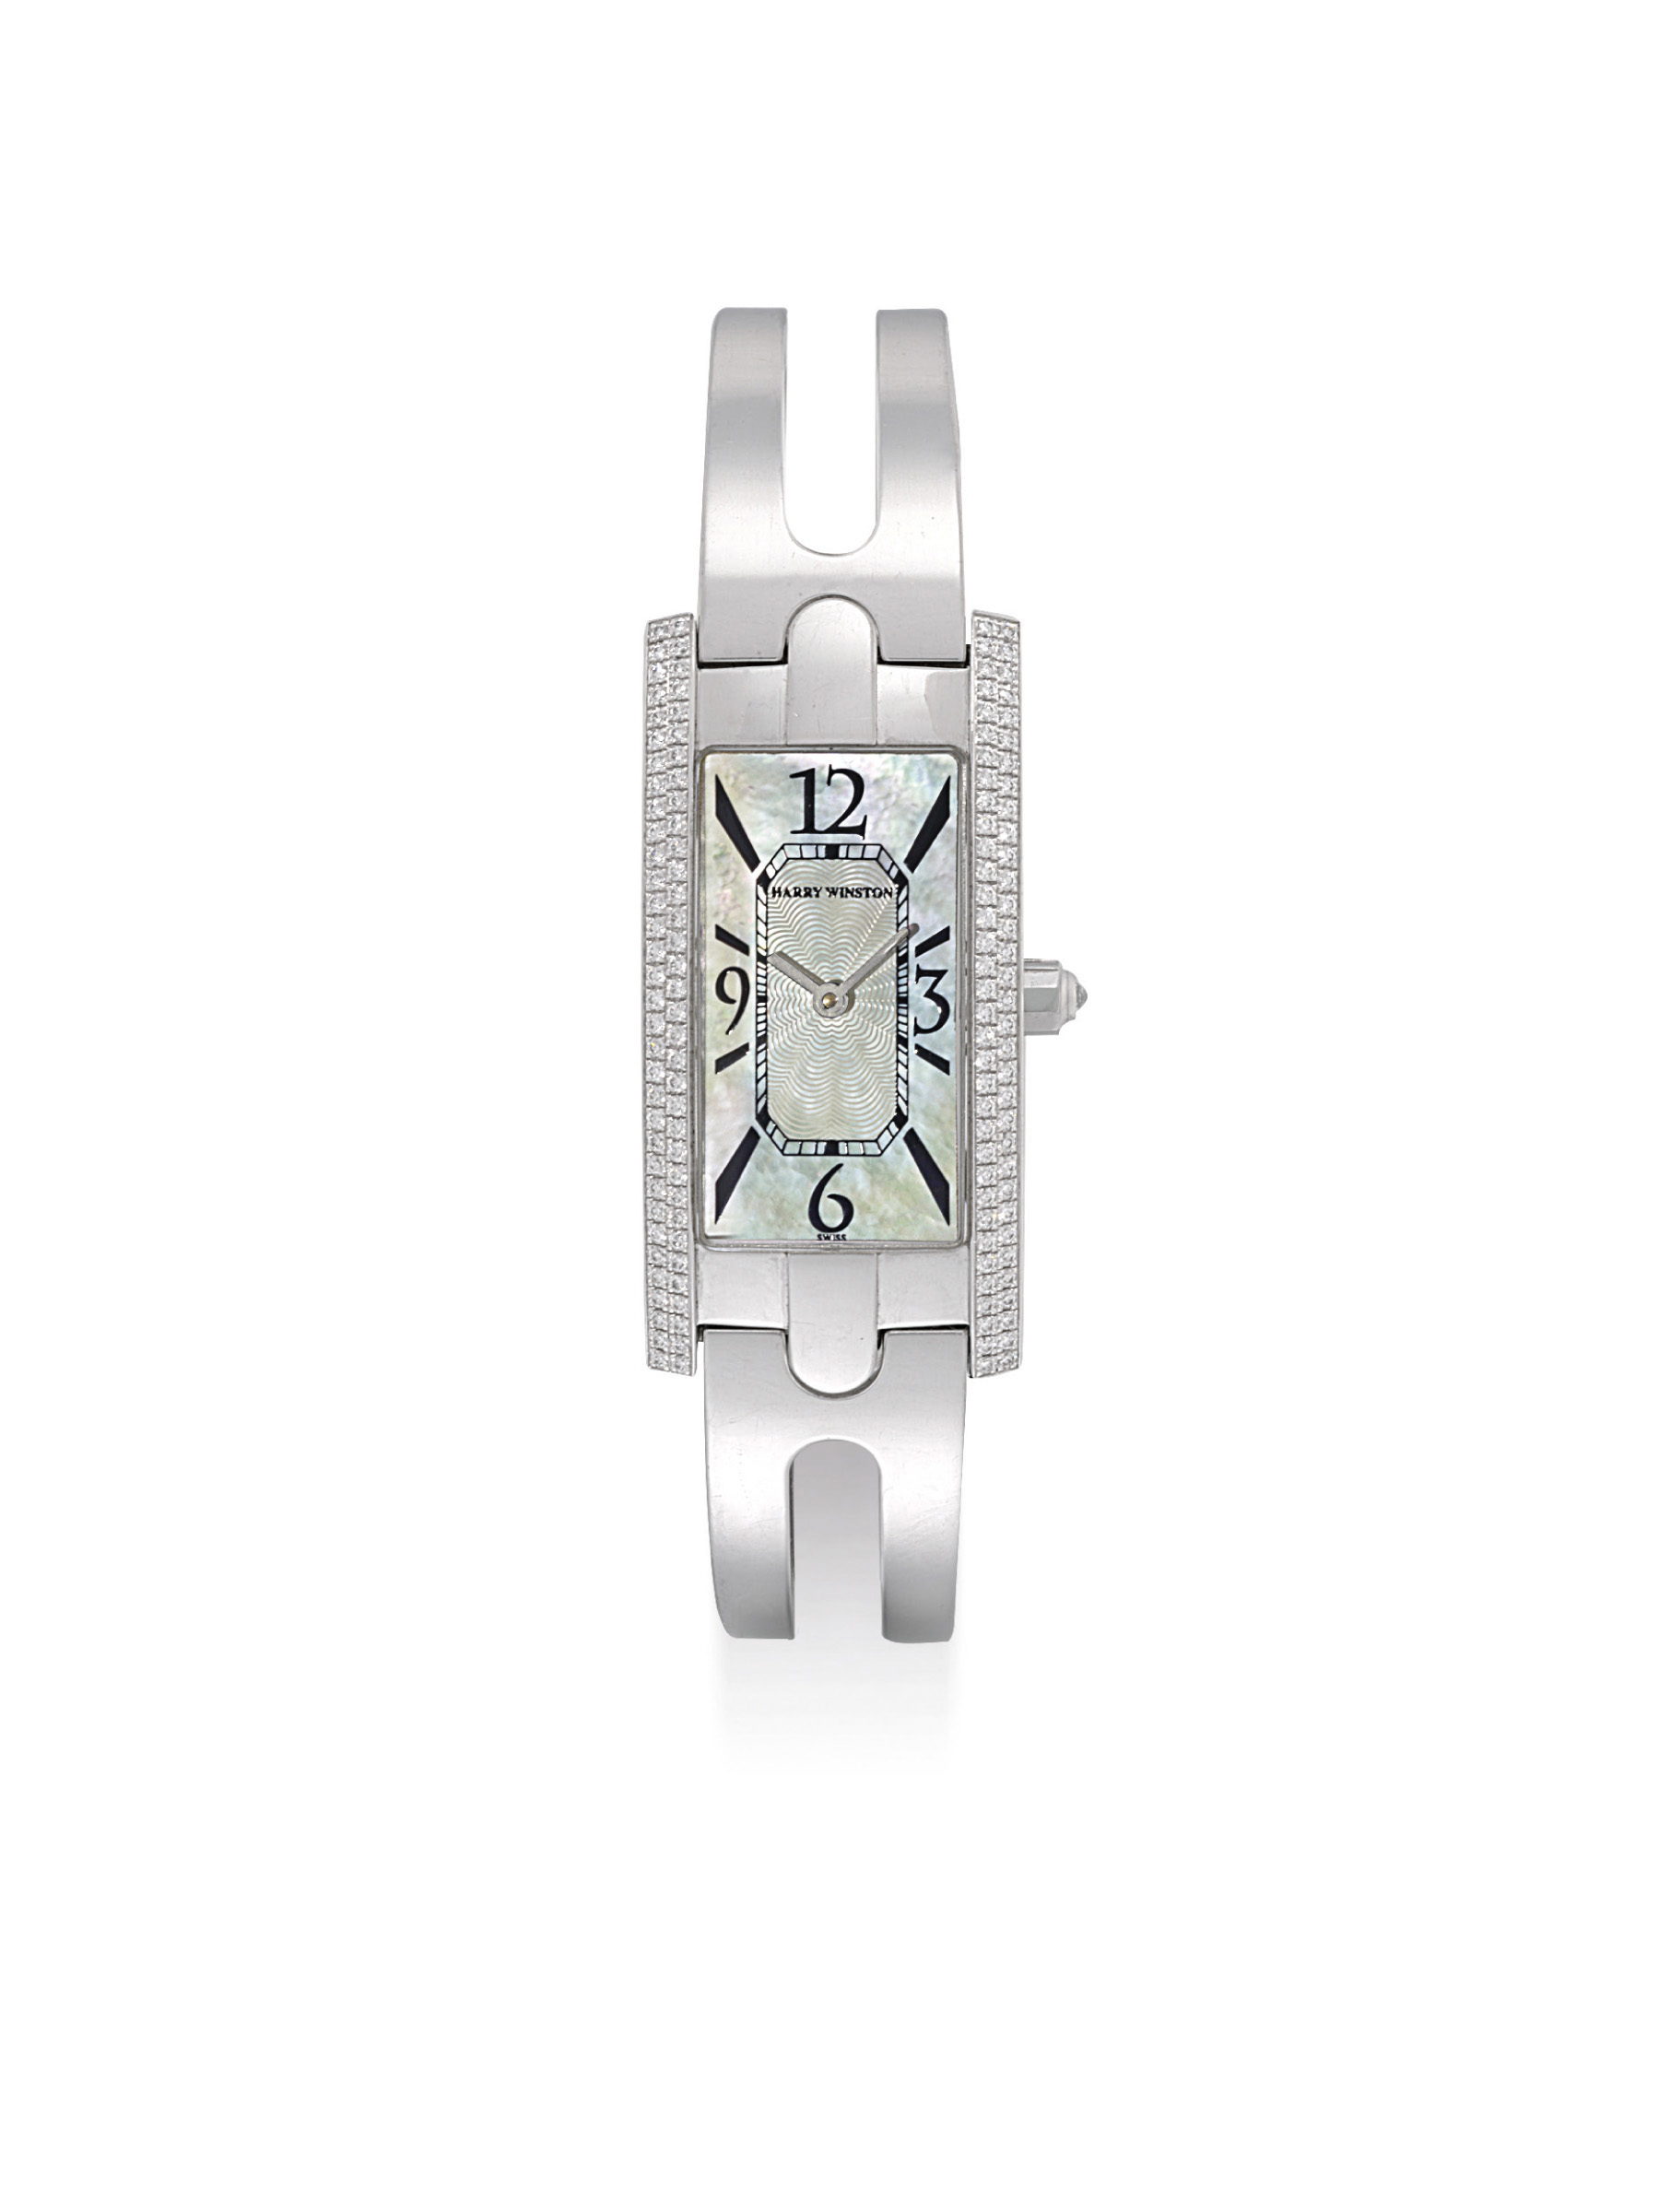 HARRY WINSTON. A LADY'S 18K WH